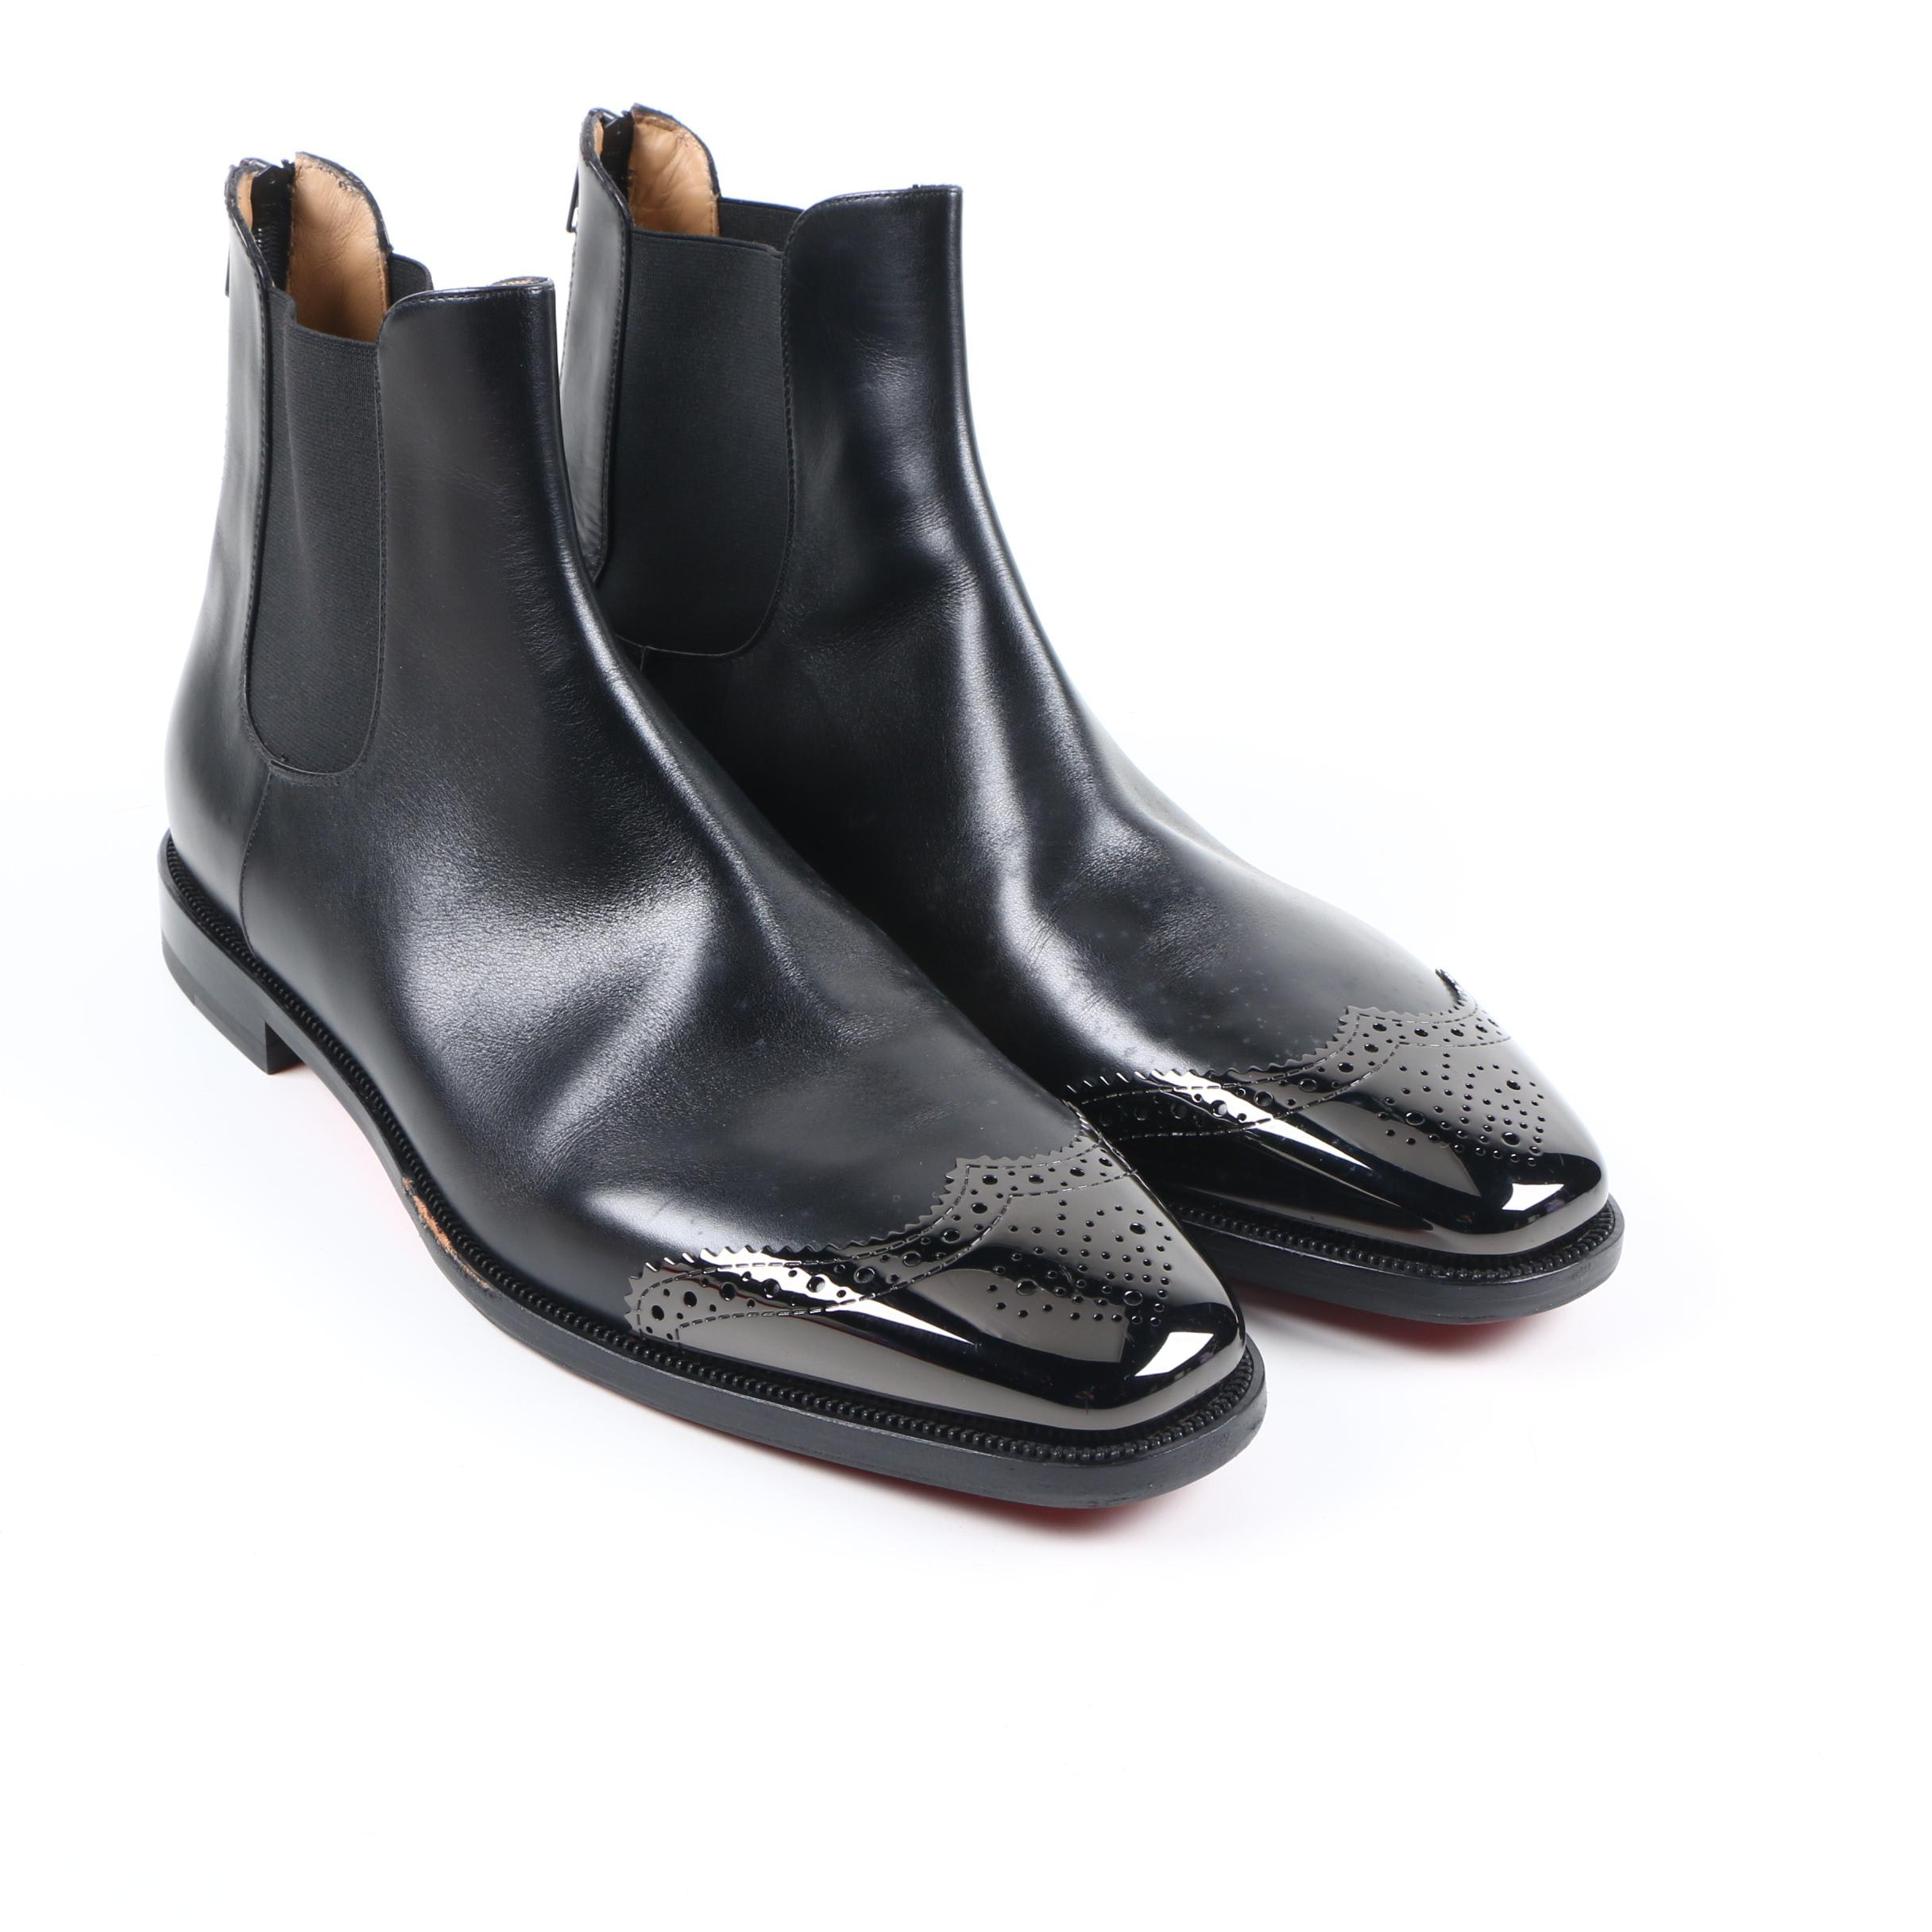 Men's Christian Louboutin Black Leather Chelsea Boots